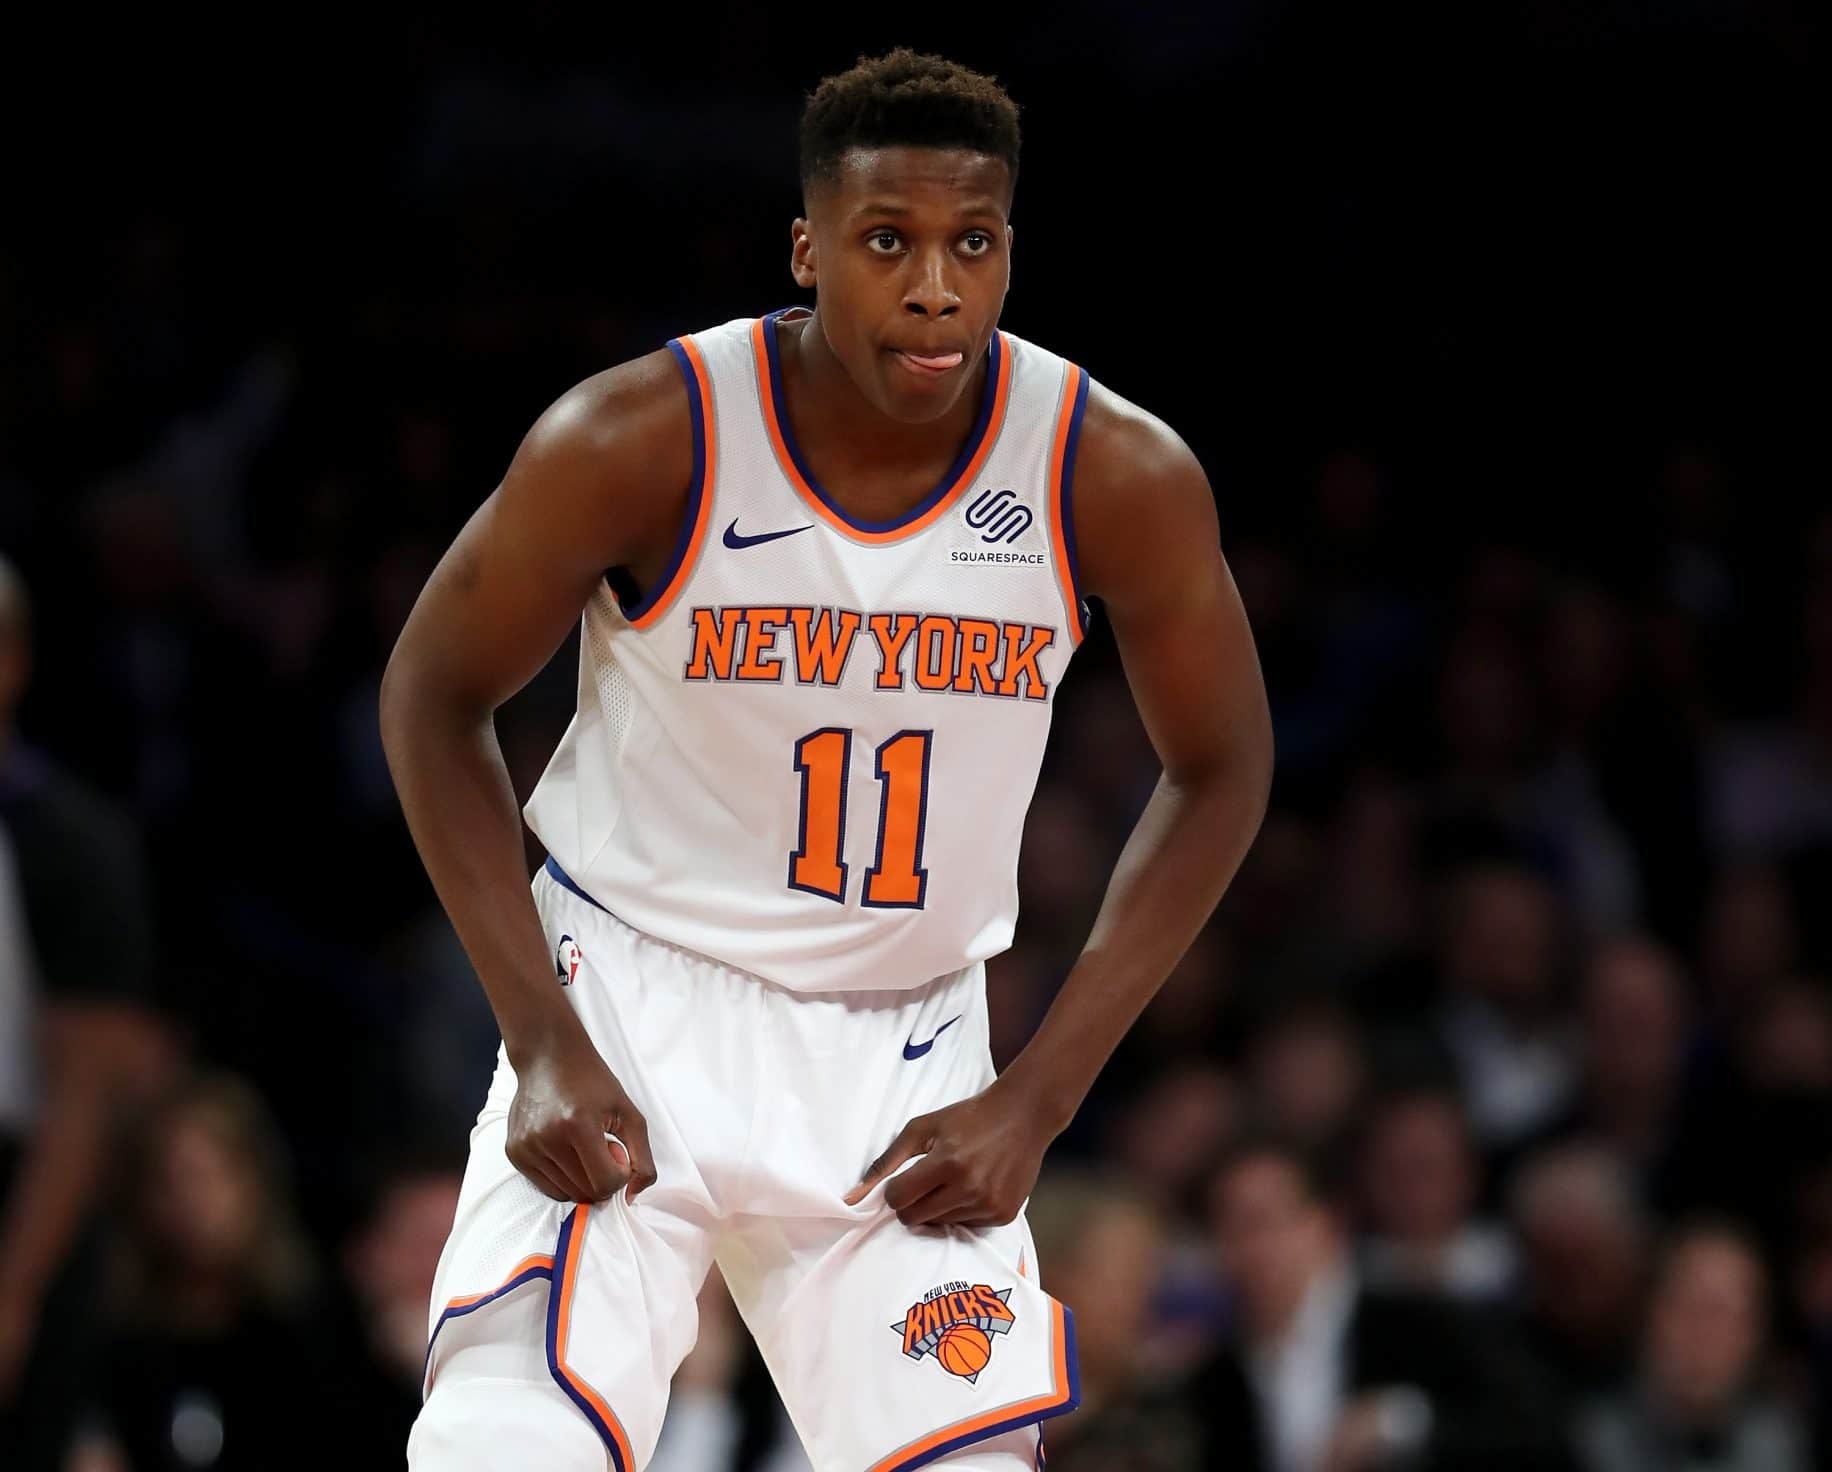 Frank Ntilikina vs. Dennis Smith Jr.: Picks paying off for ...